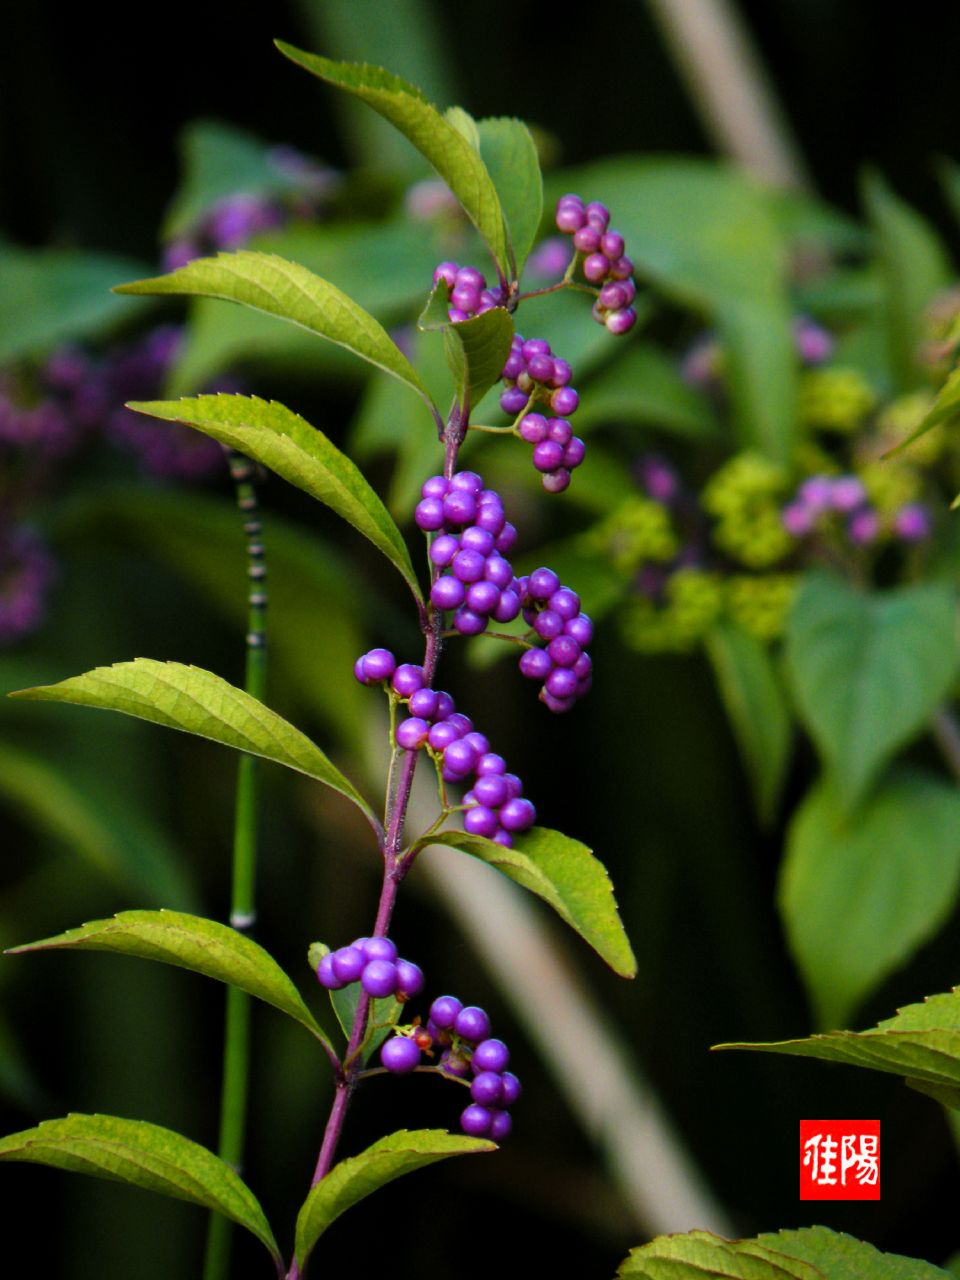 P80-Orf_P-Berries_2009-09_09A